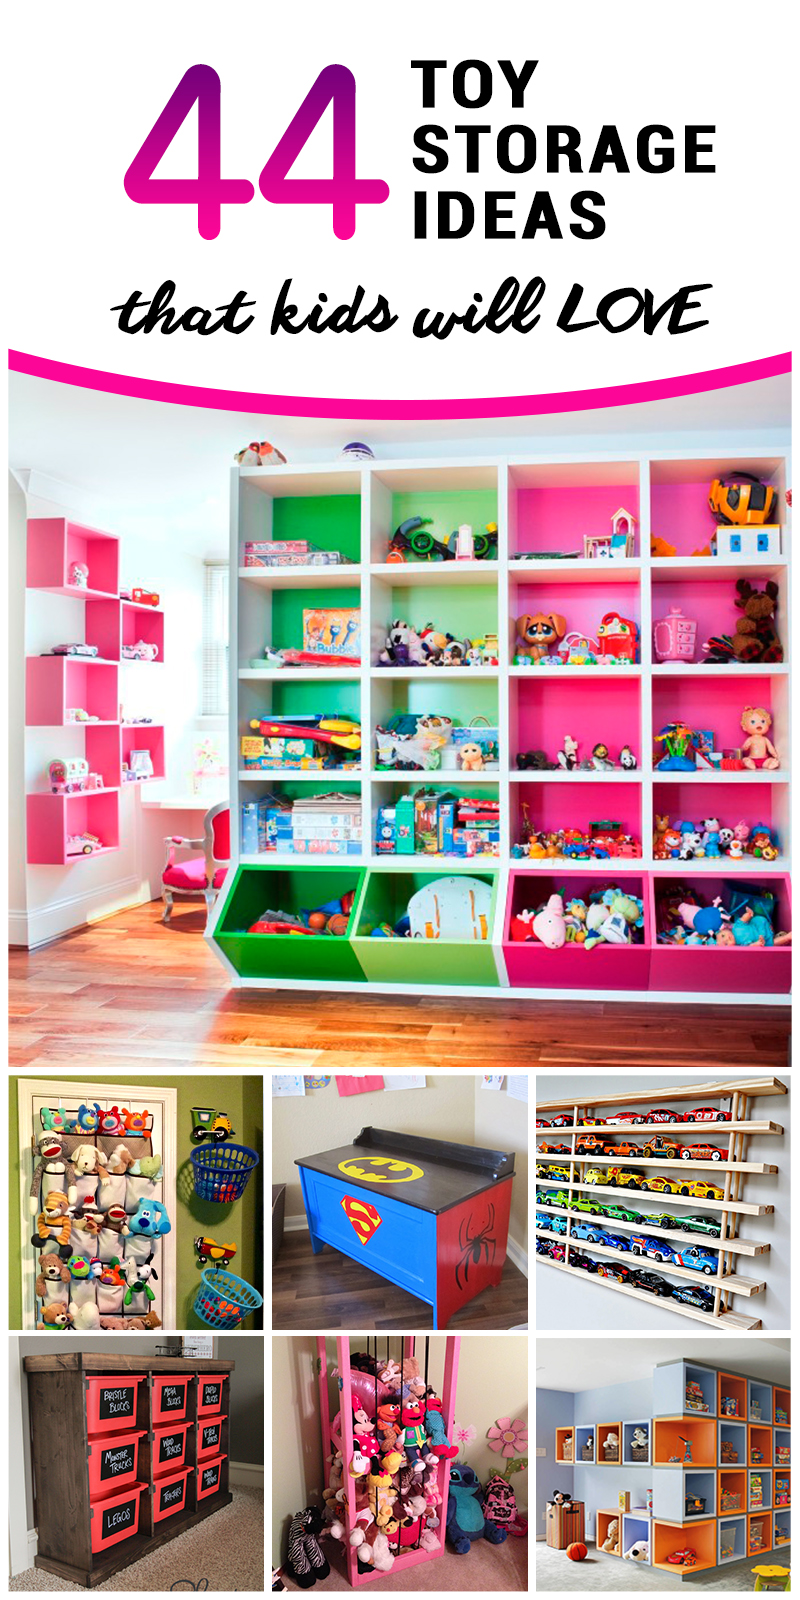 44 Best Toy Storage Ideas that Kids Will Love in 2017